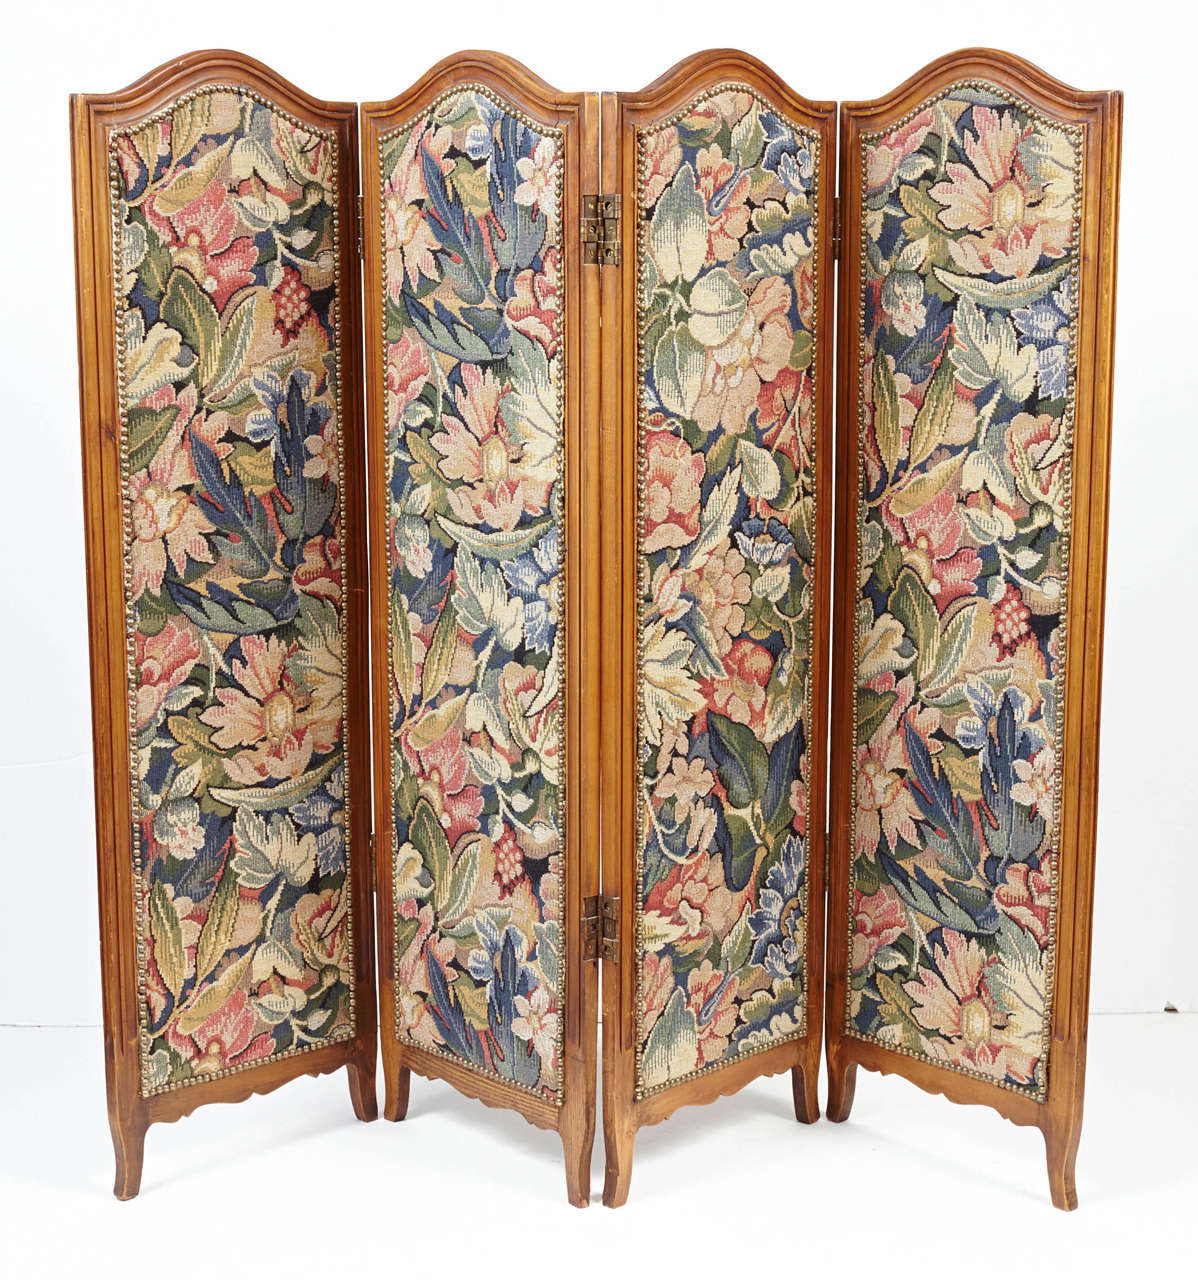 Small Provincial folding screen with 4 arch-top panels with short cabriole legs inset with floral tapestry.